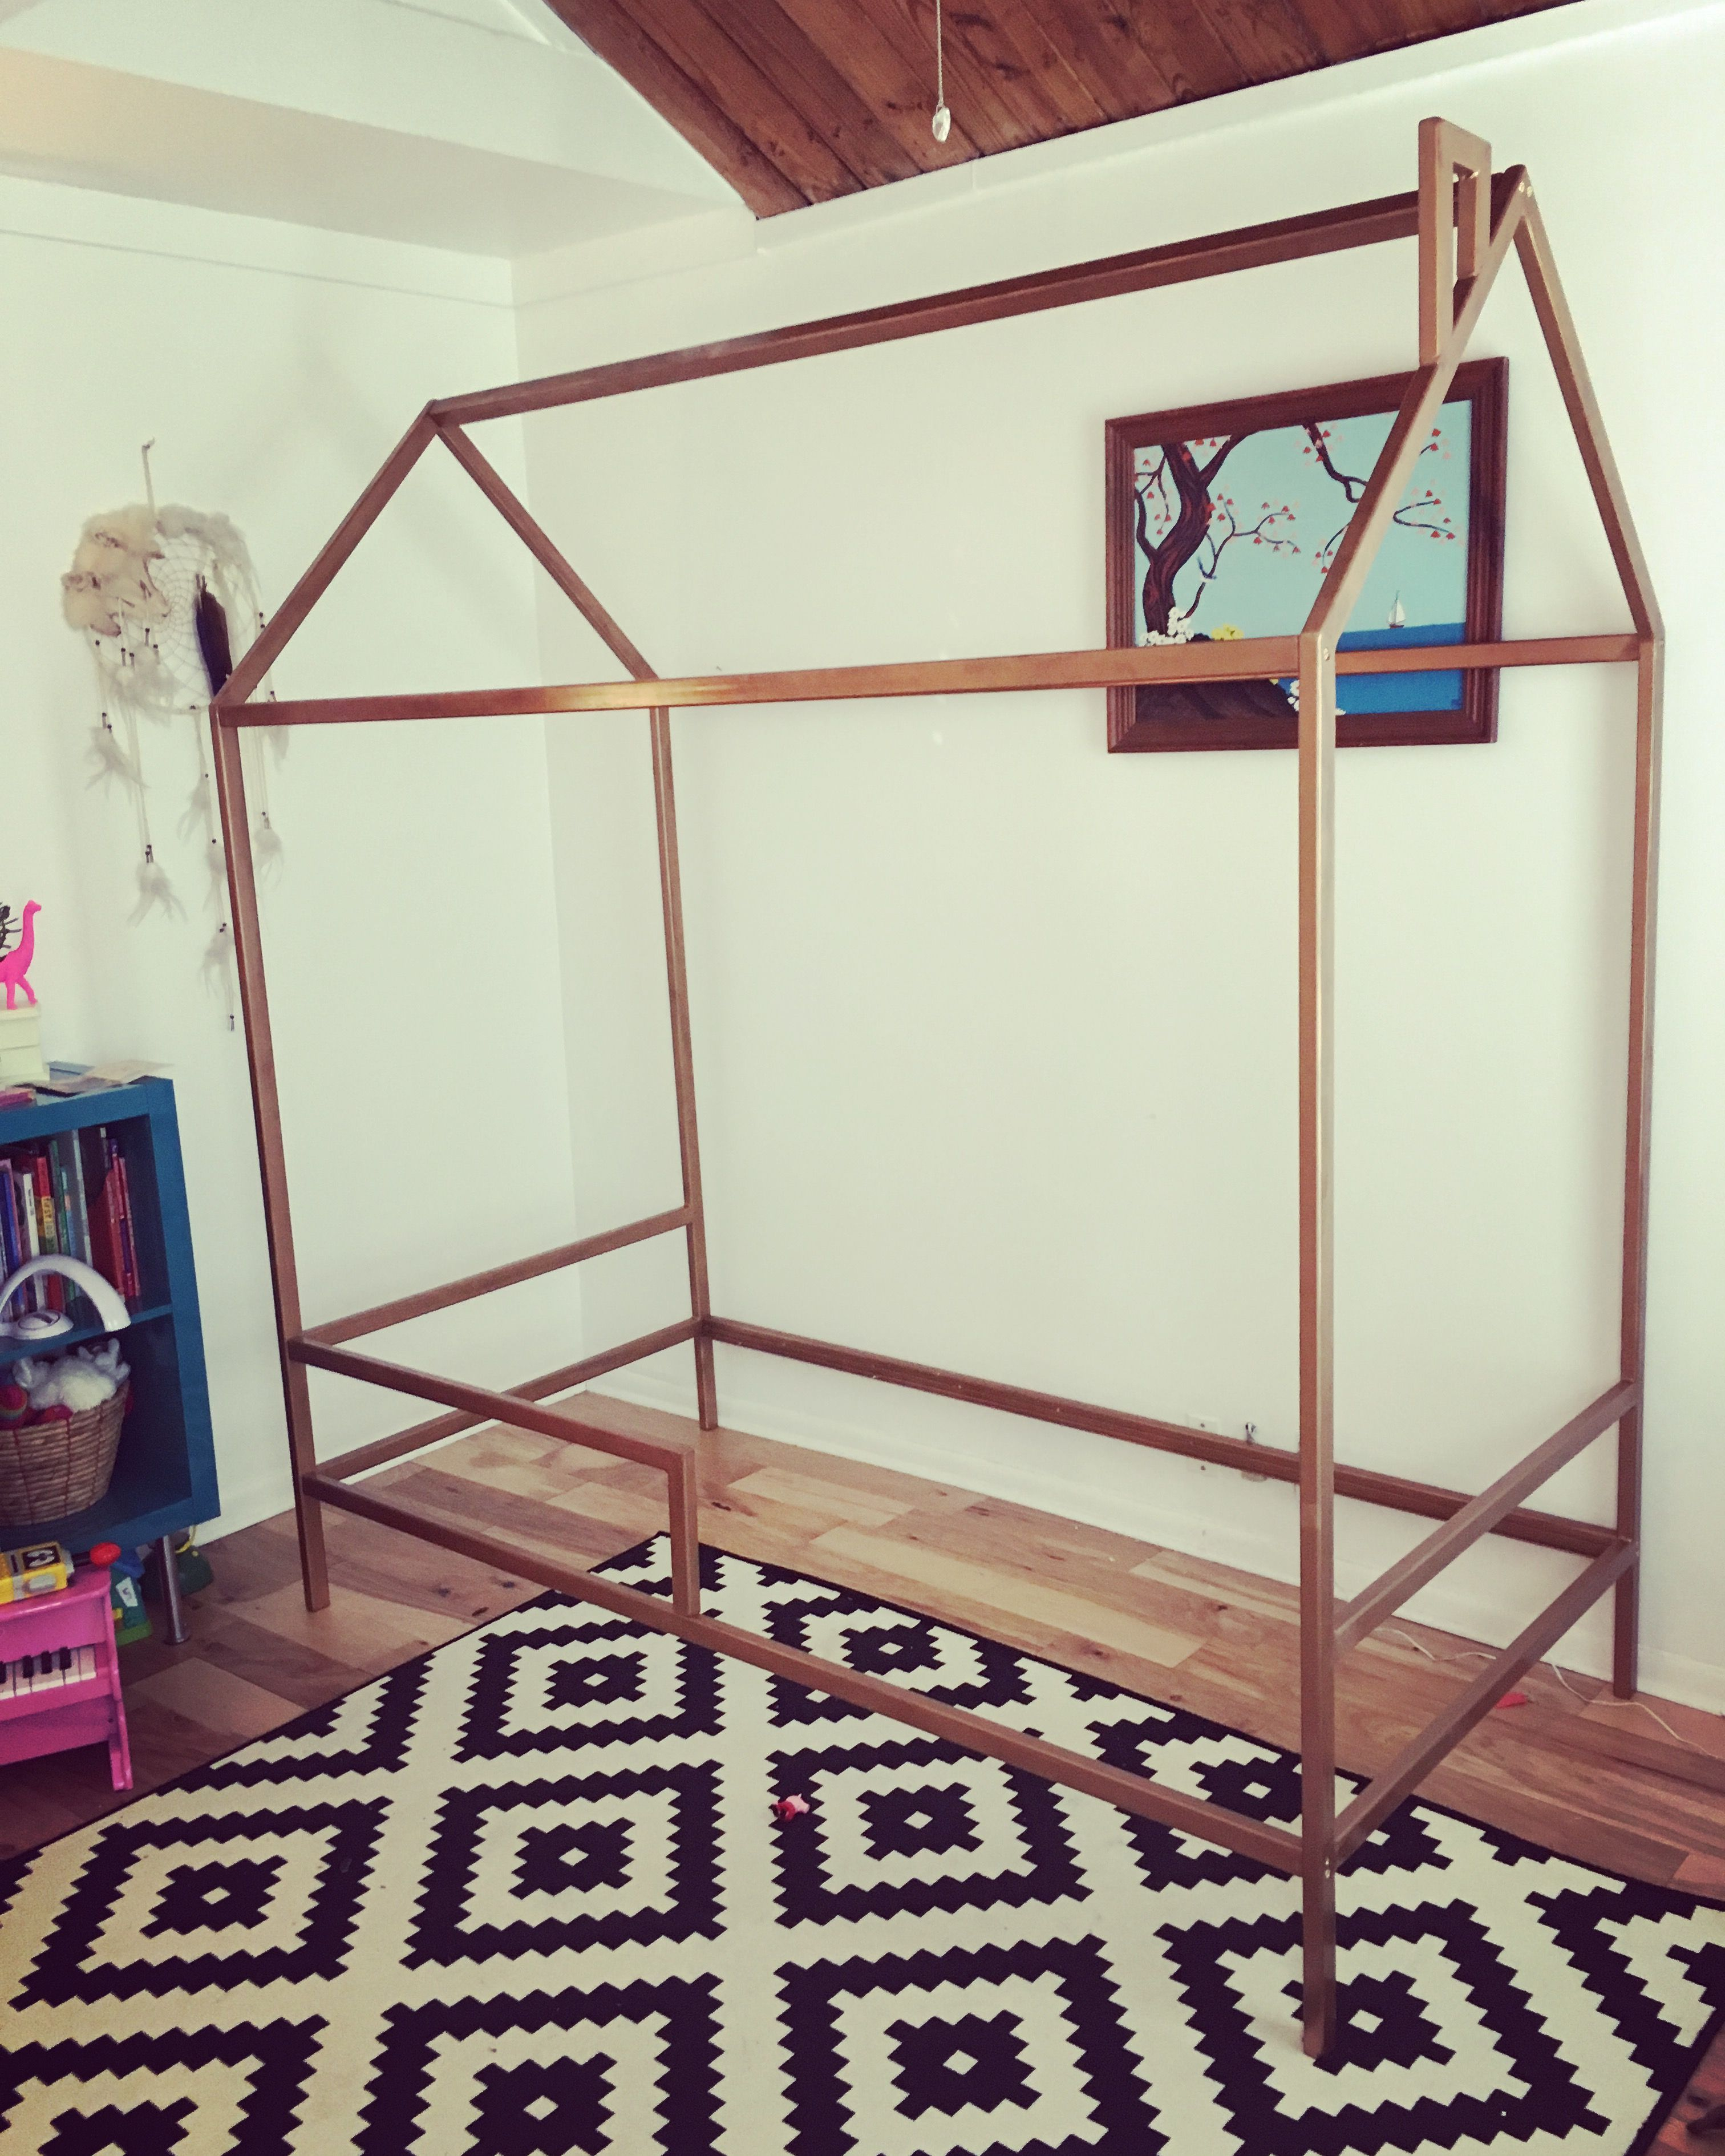 Modern House Twin Bed Frame Welded metal bed frame for a